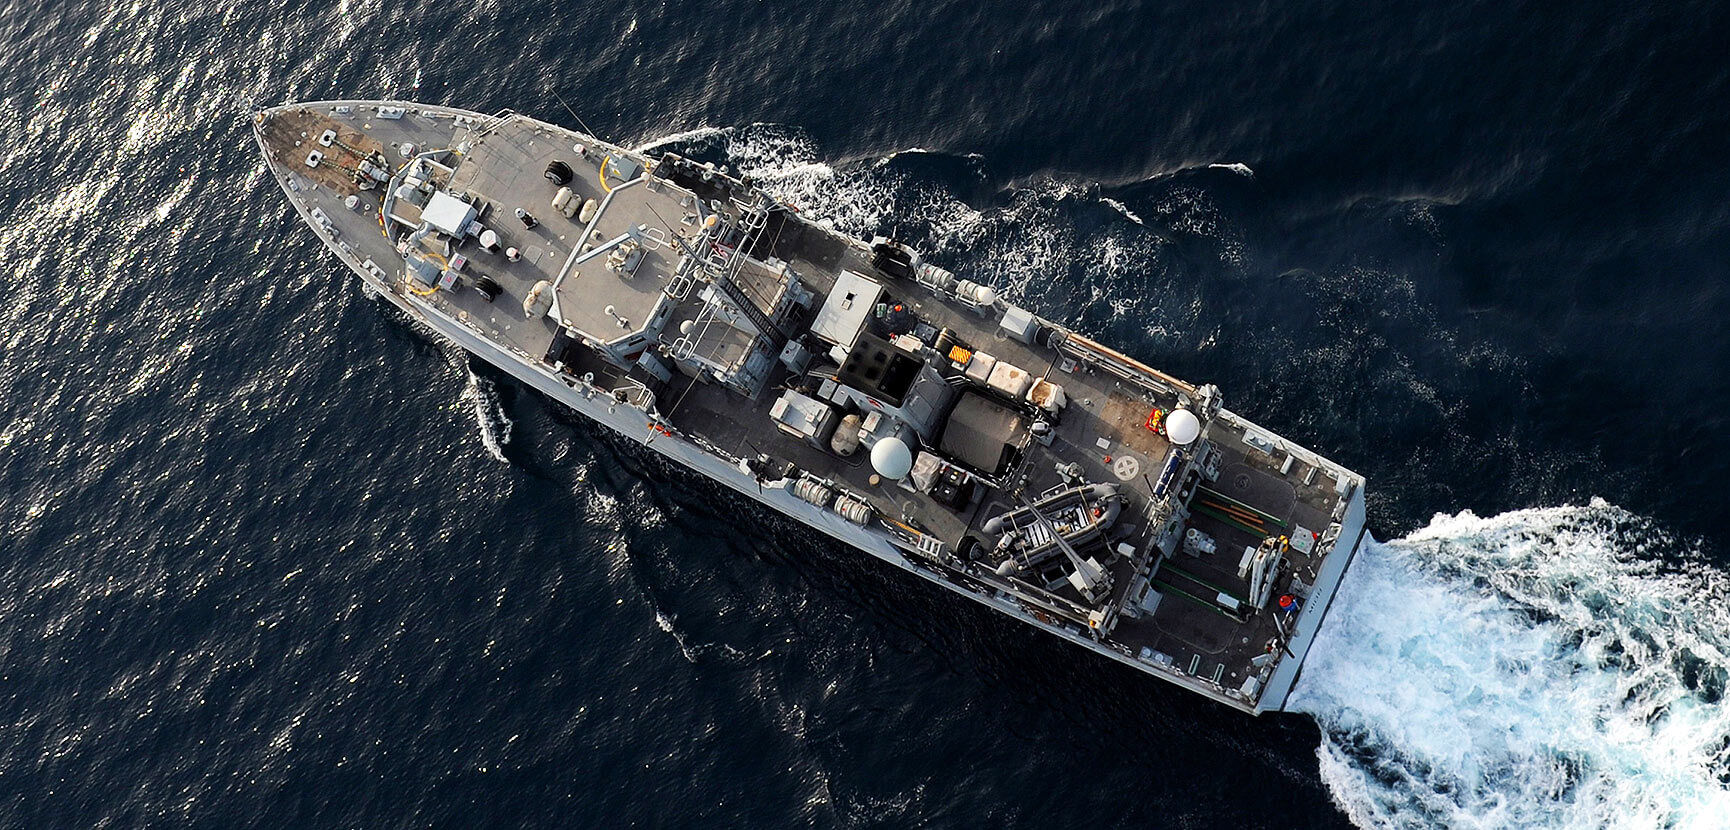 The future of Royal Navy mine hunting